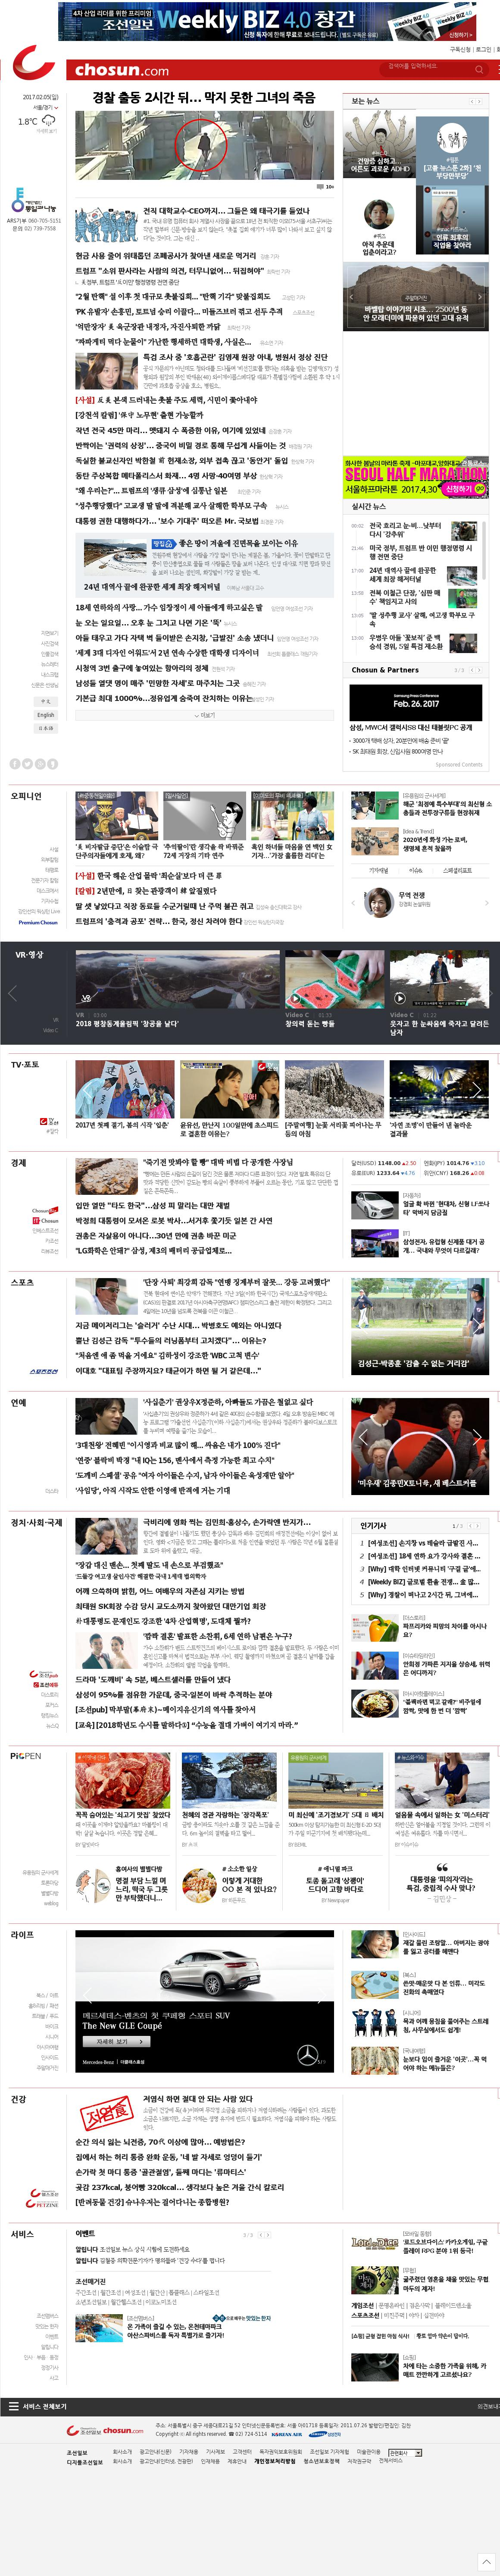 chosun.com at Sunday Feb. 5, 2017, 1:02 a.m. UTC